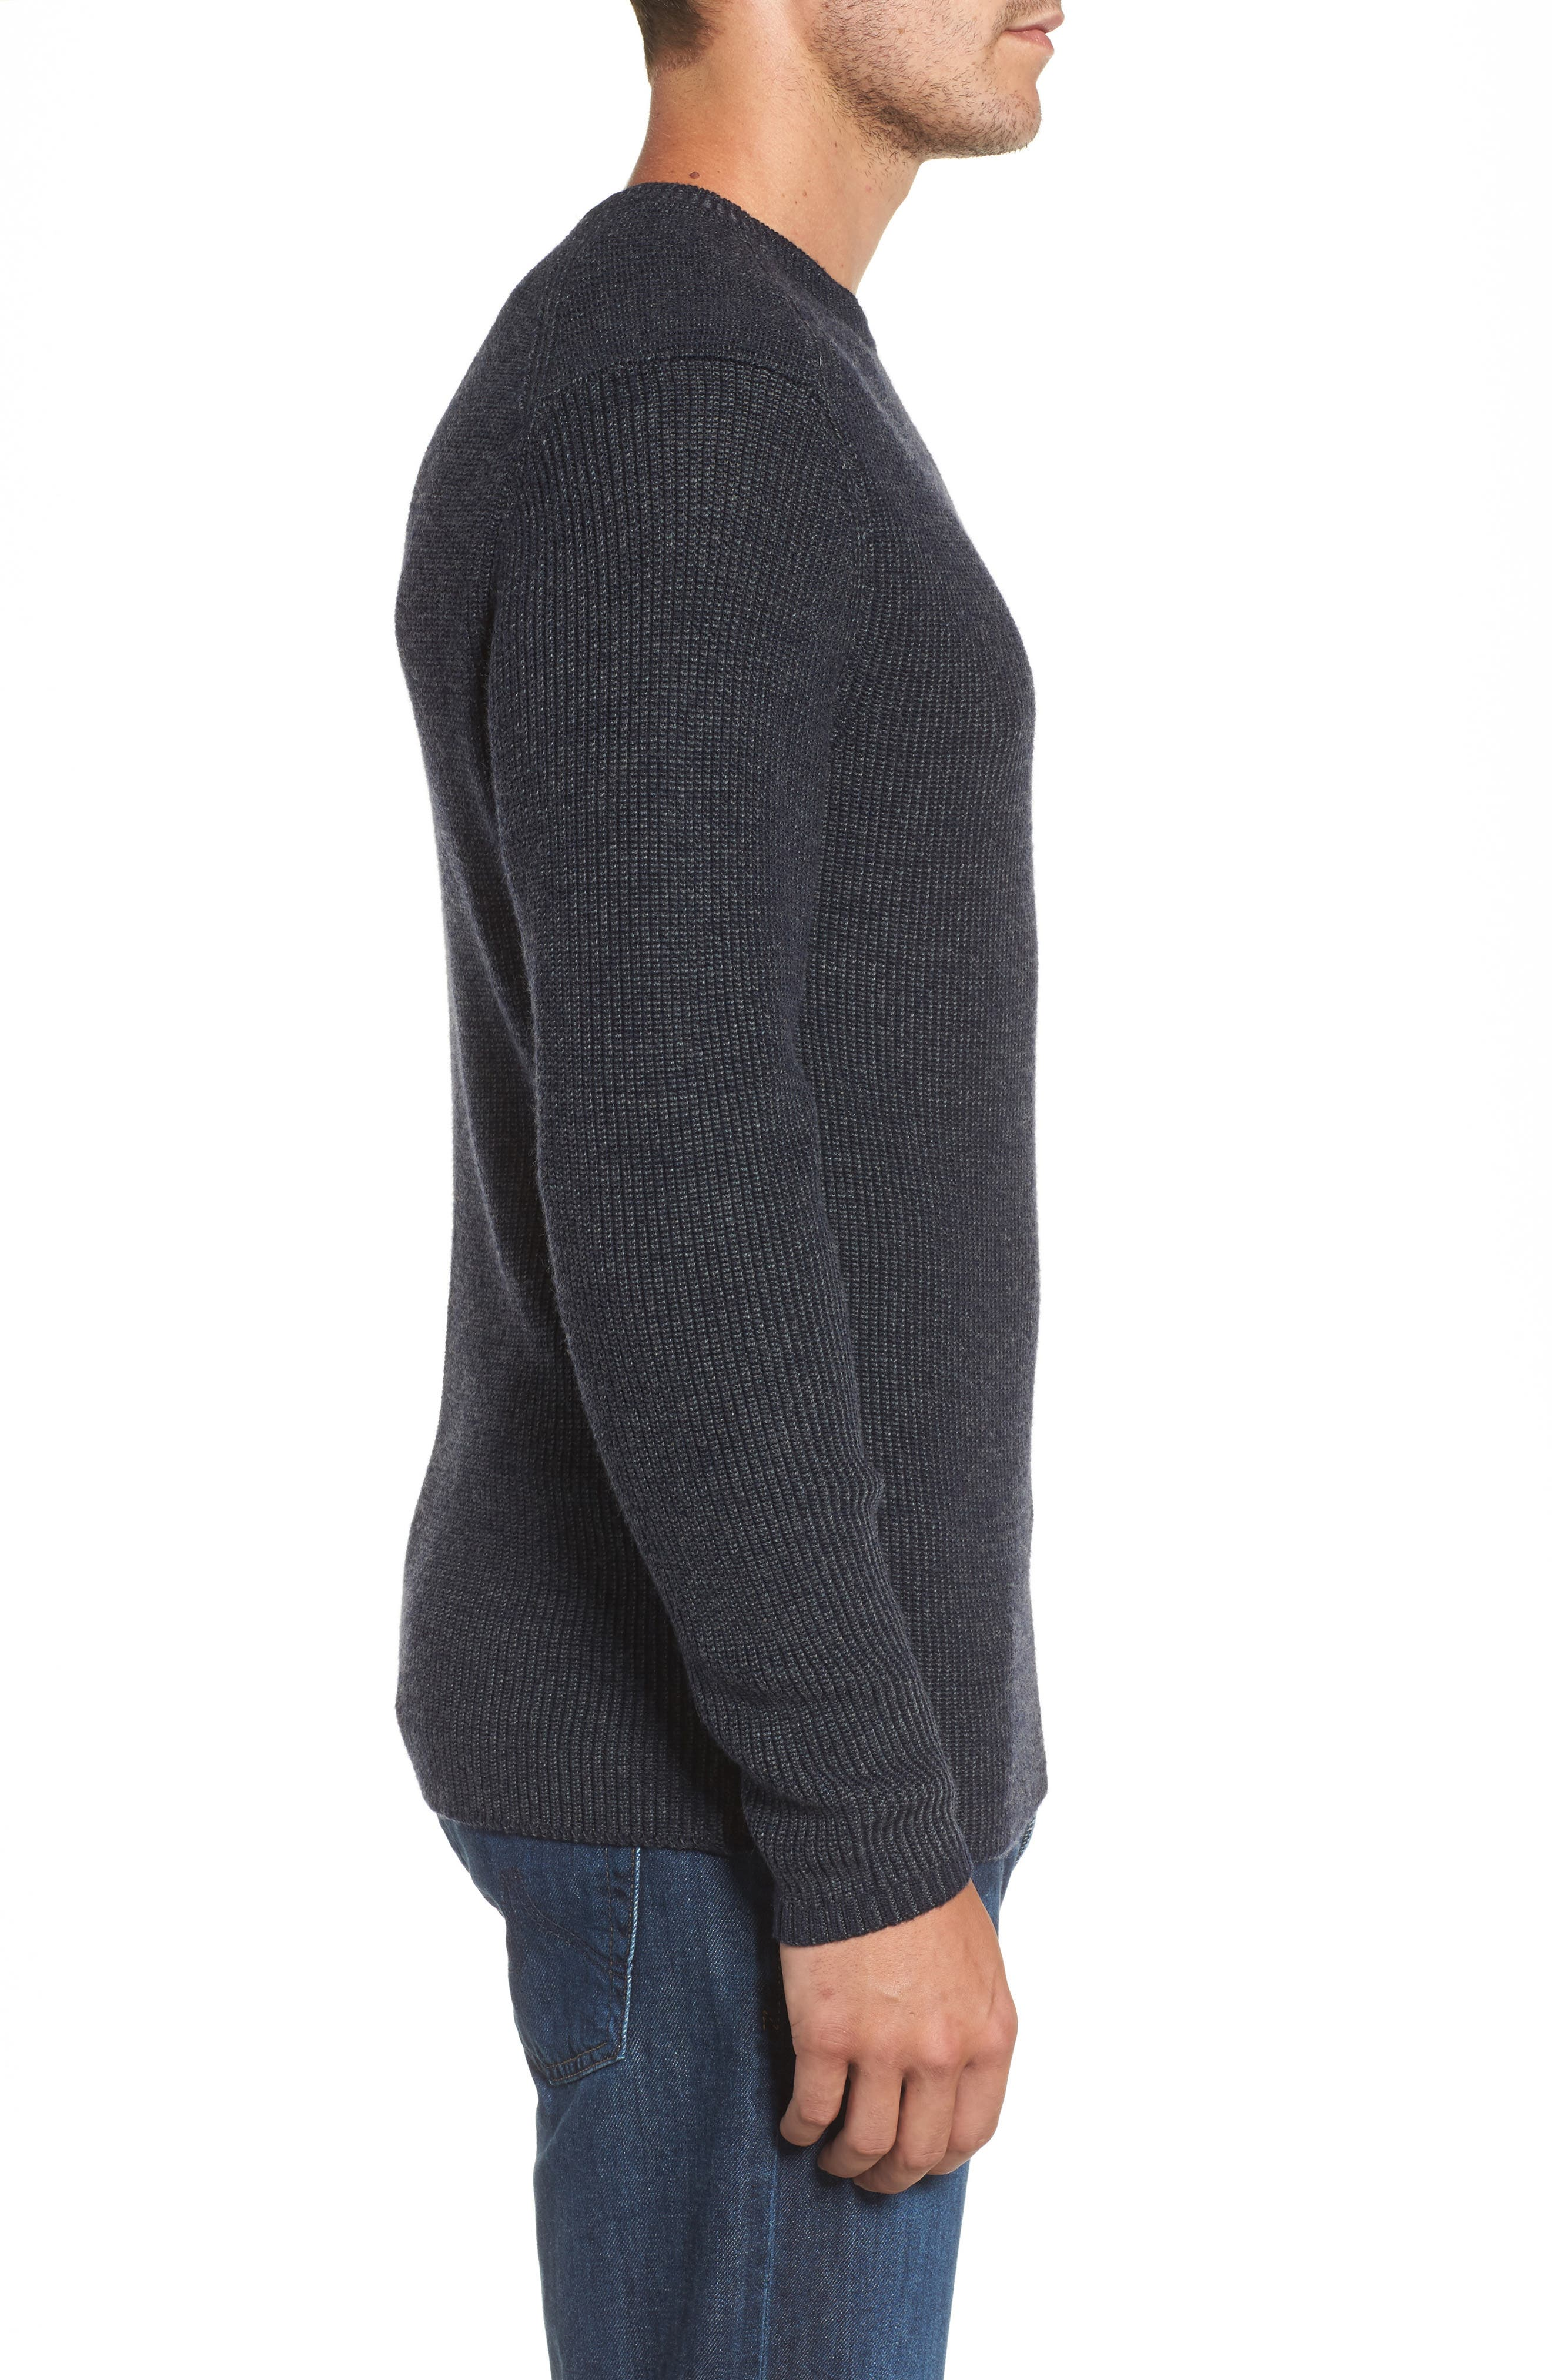 Whalers Bay Ribbed Merino Wool Sweater,                             Alternate thumbnail 3, color,                             470